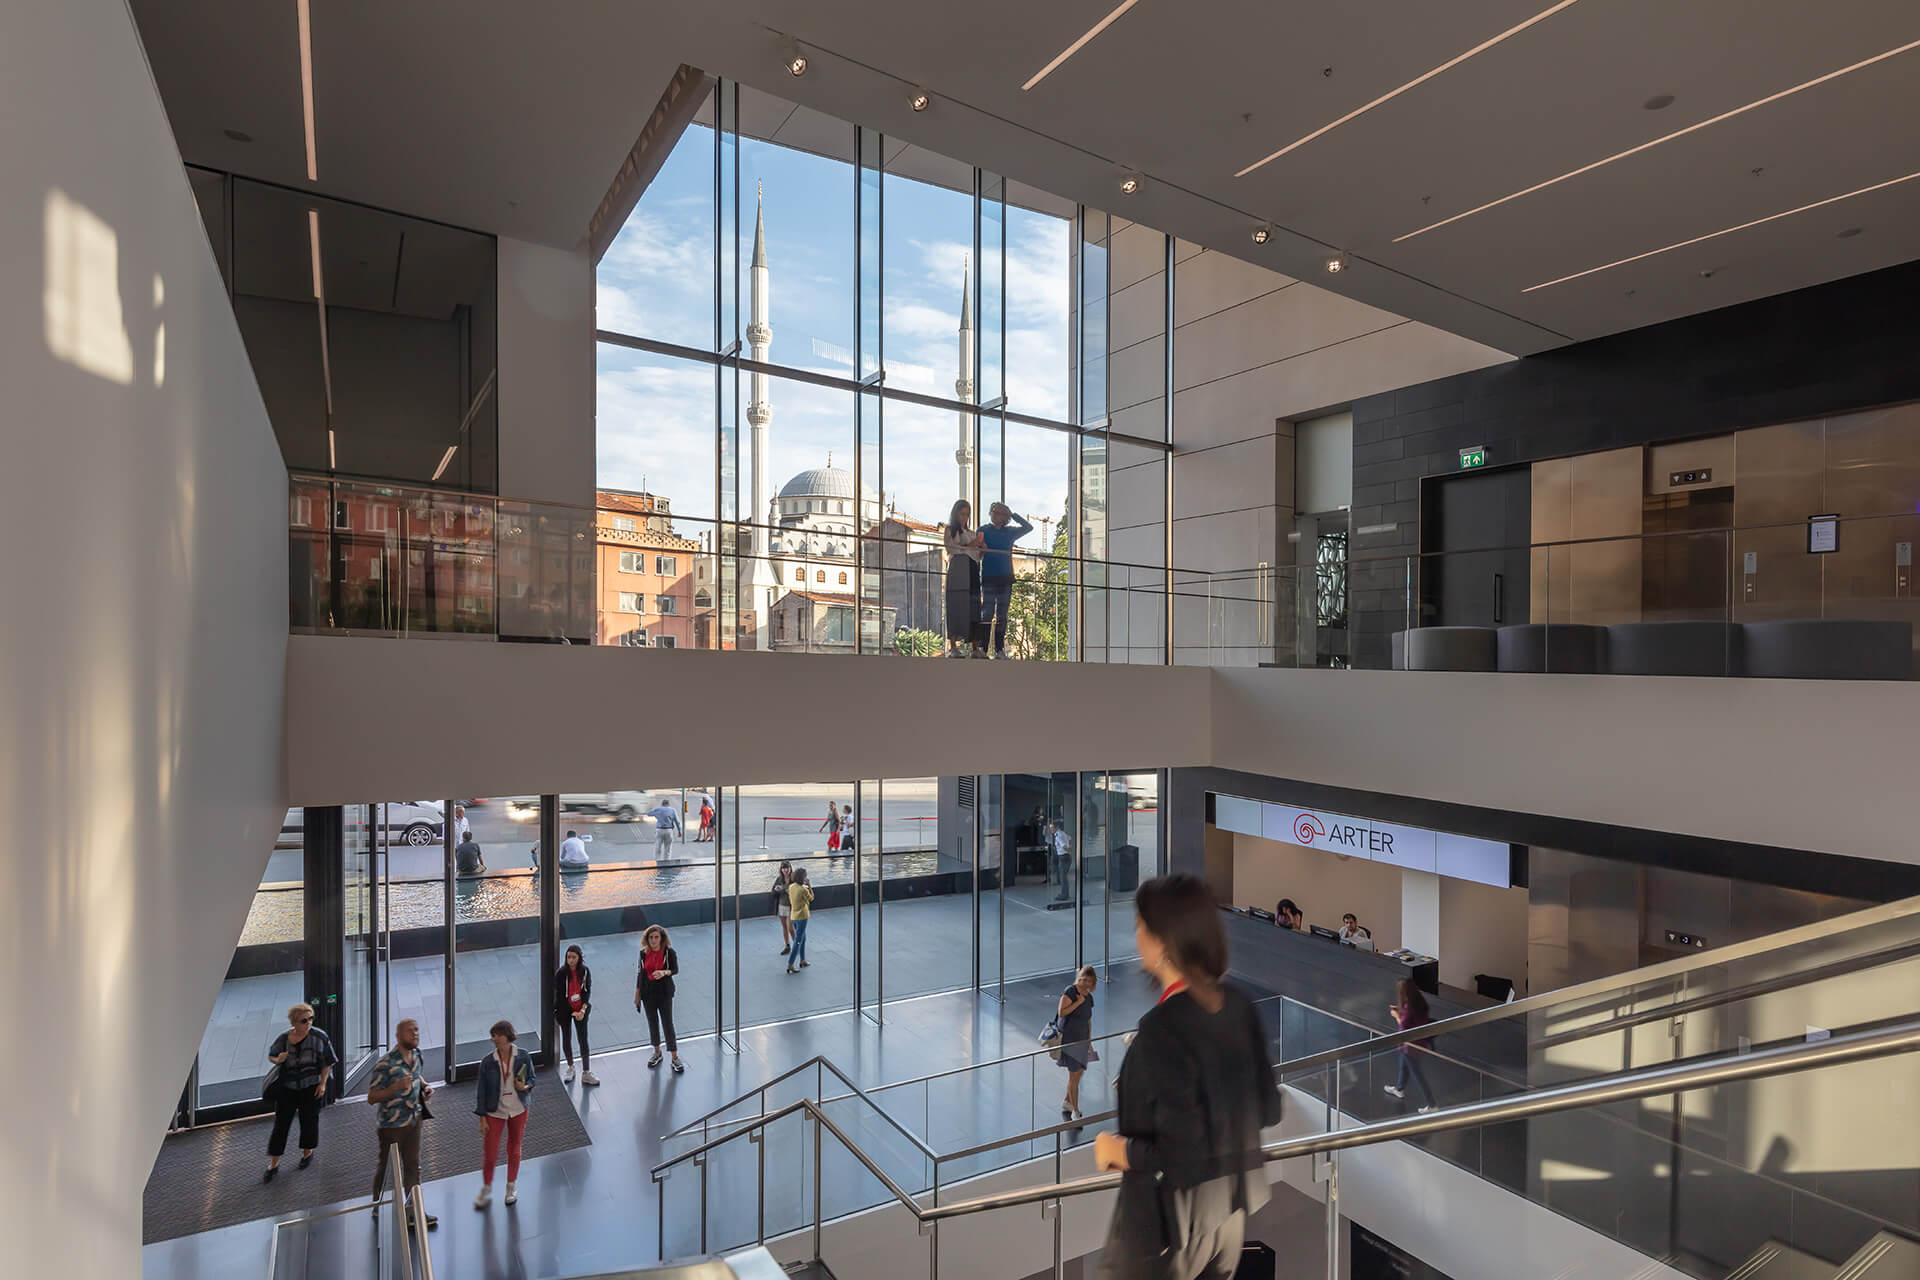 The Arter Contemporary Art Museum's triple height atrium | Arter Contemporary Art Museum by Grimshaw Architects | STIRworld